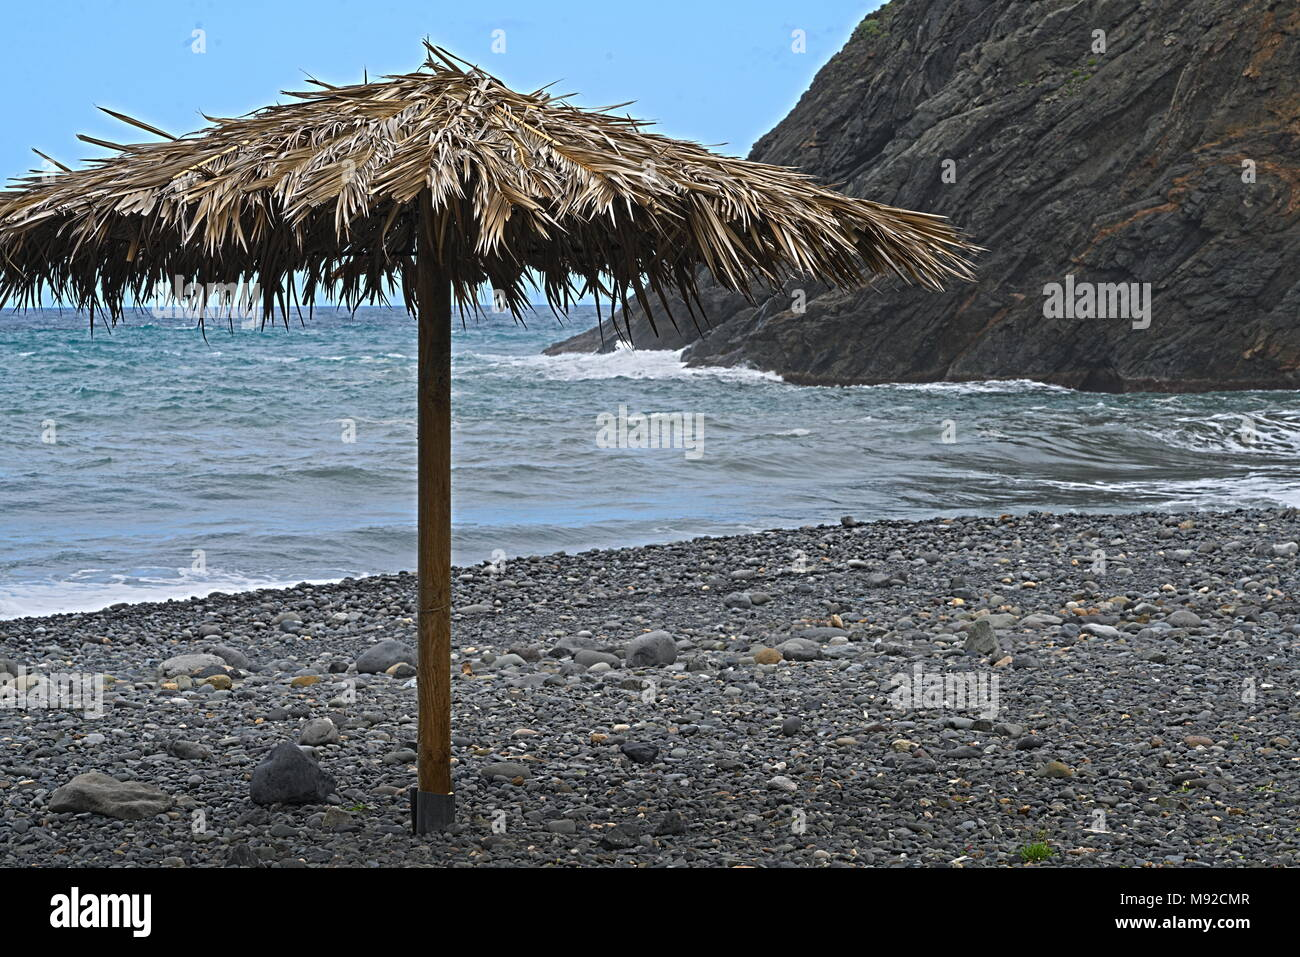 palm  branch parasol at a lonely stone beach, the ocean and a blue sky in the background - Stock Image